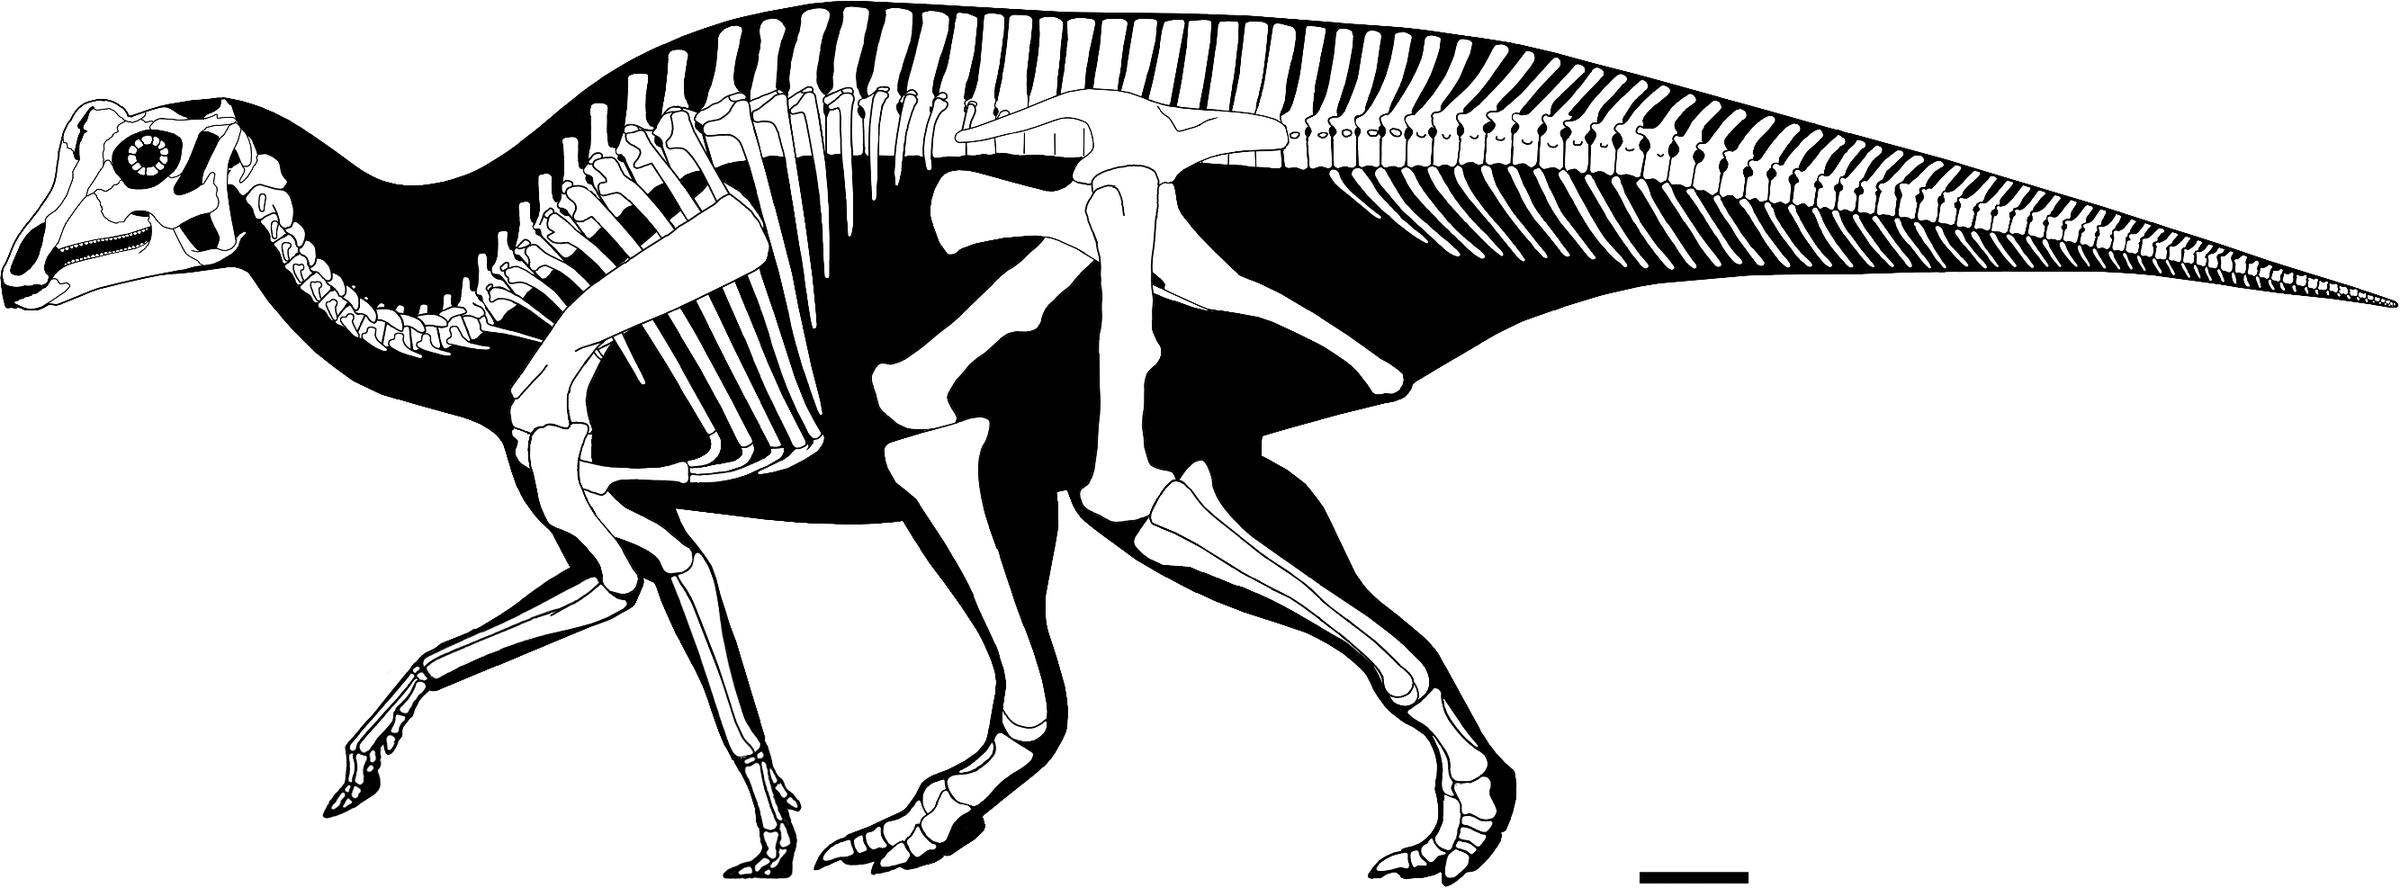 Baby Dinosaur Discovered By A High School Student Has Lots